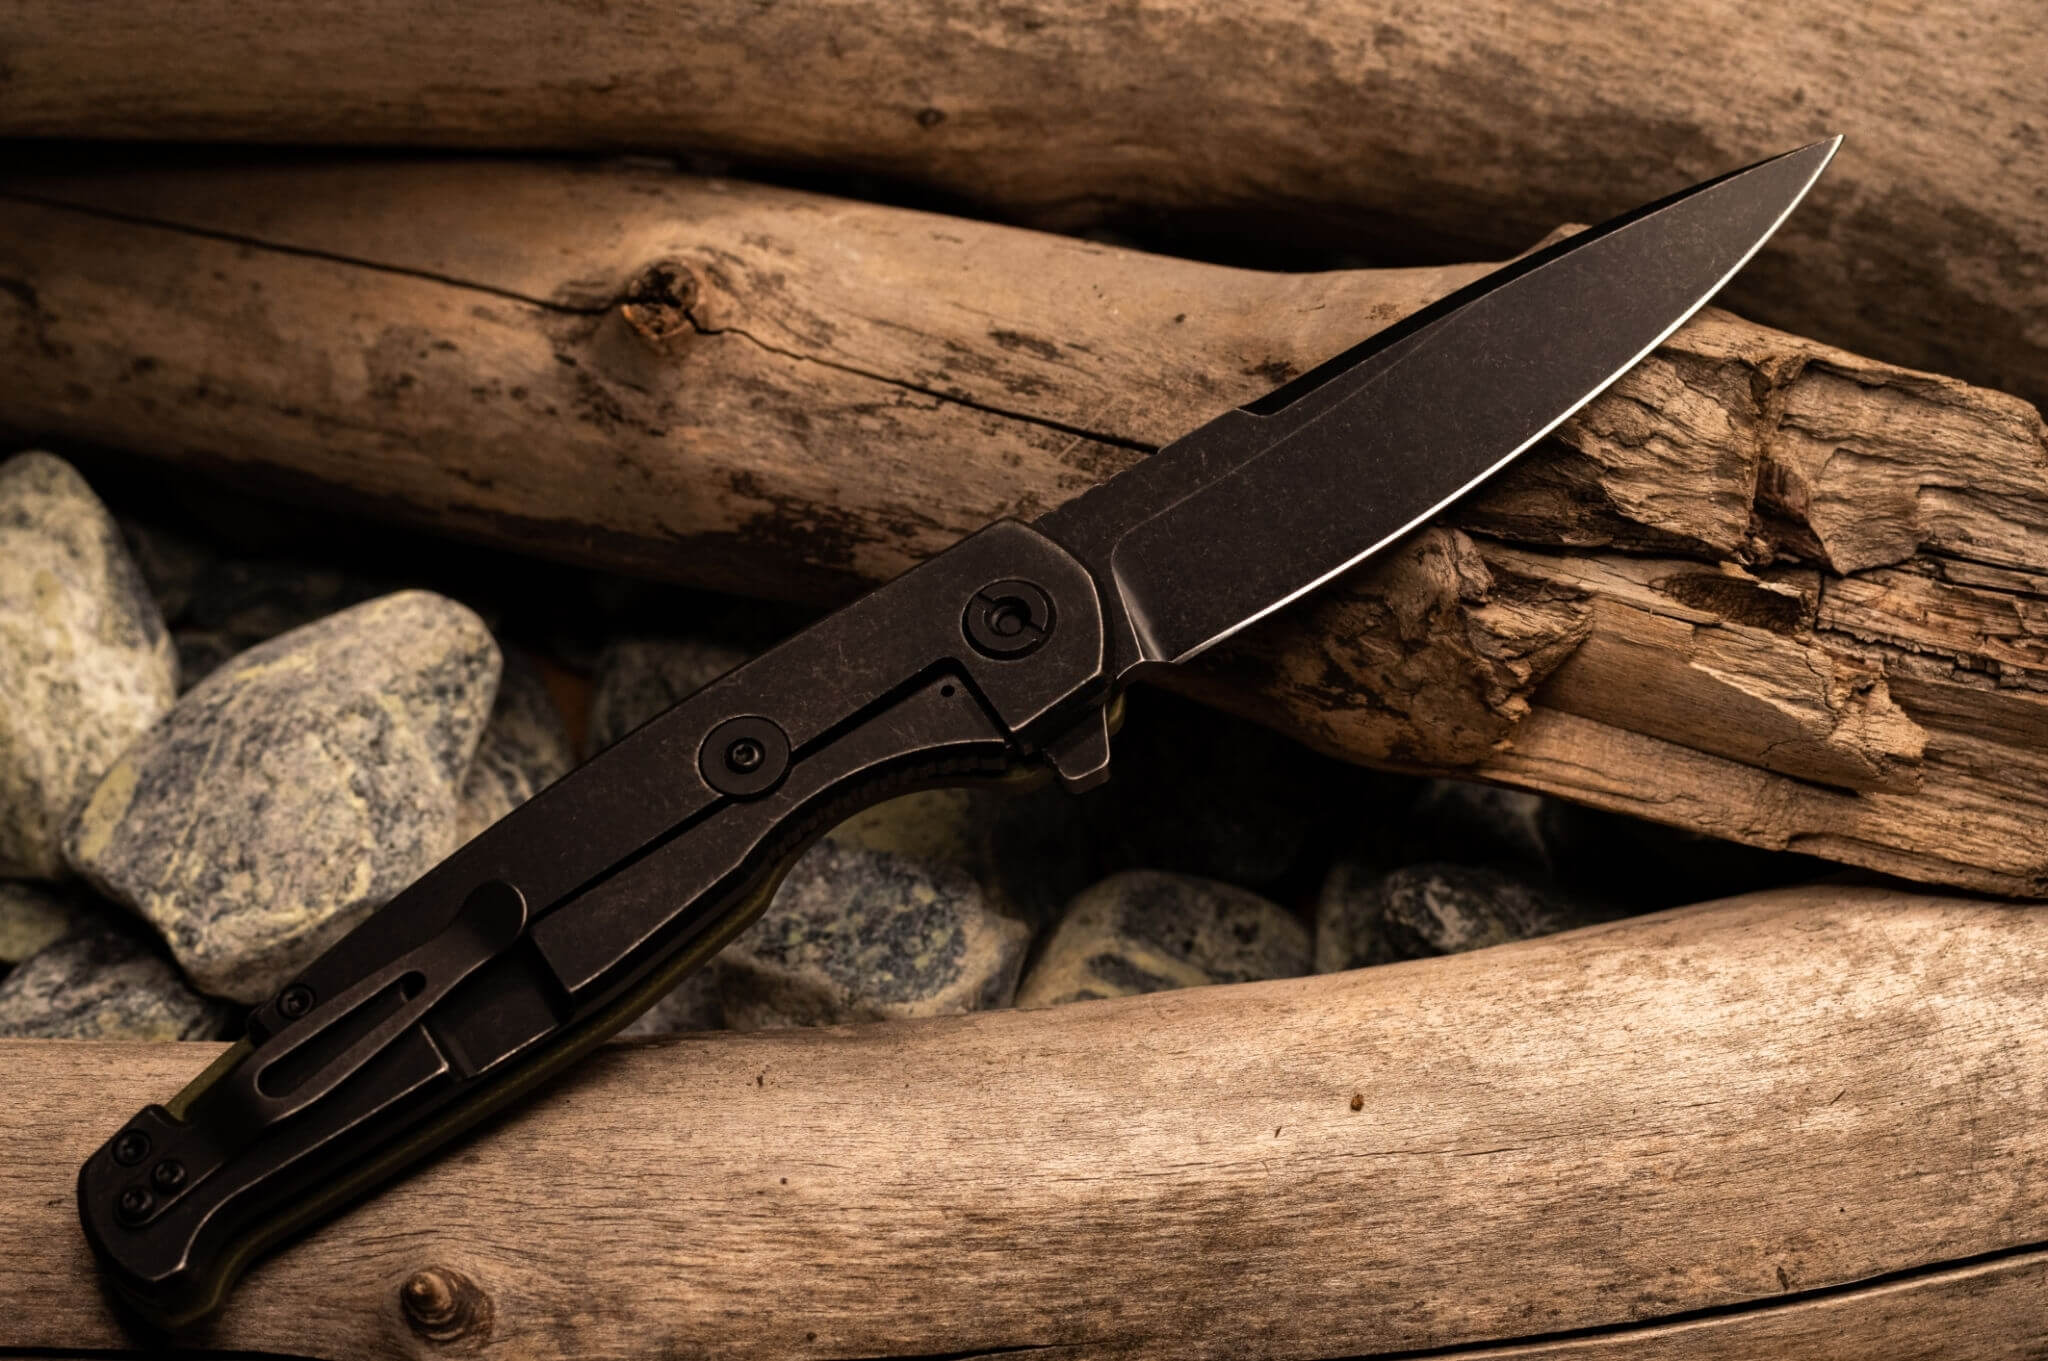 5 Reasons To Have a Bushcraft Knife